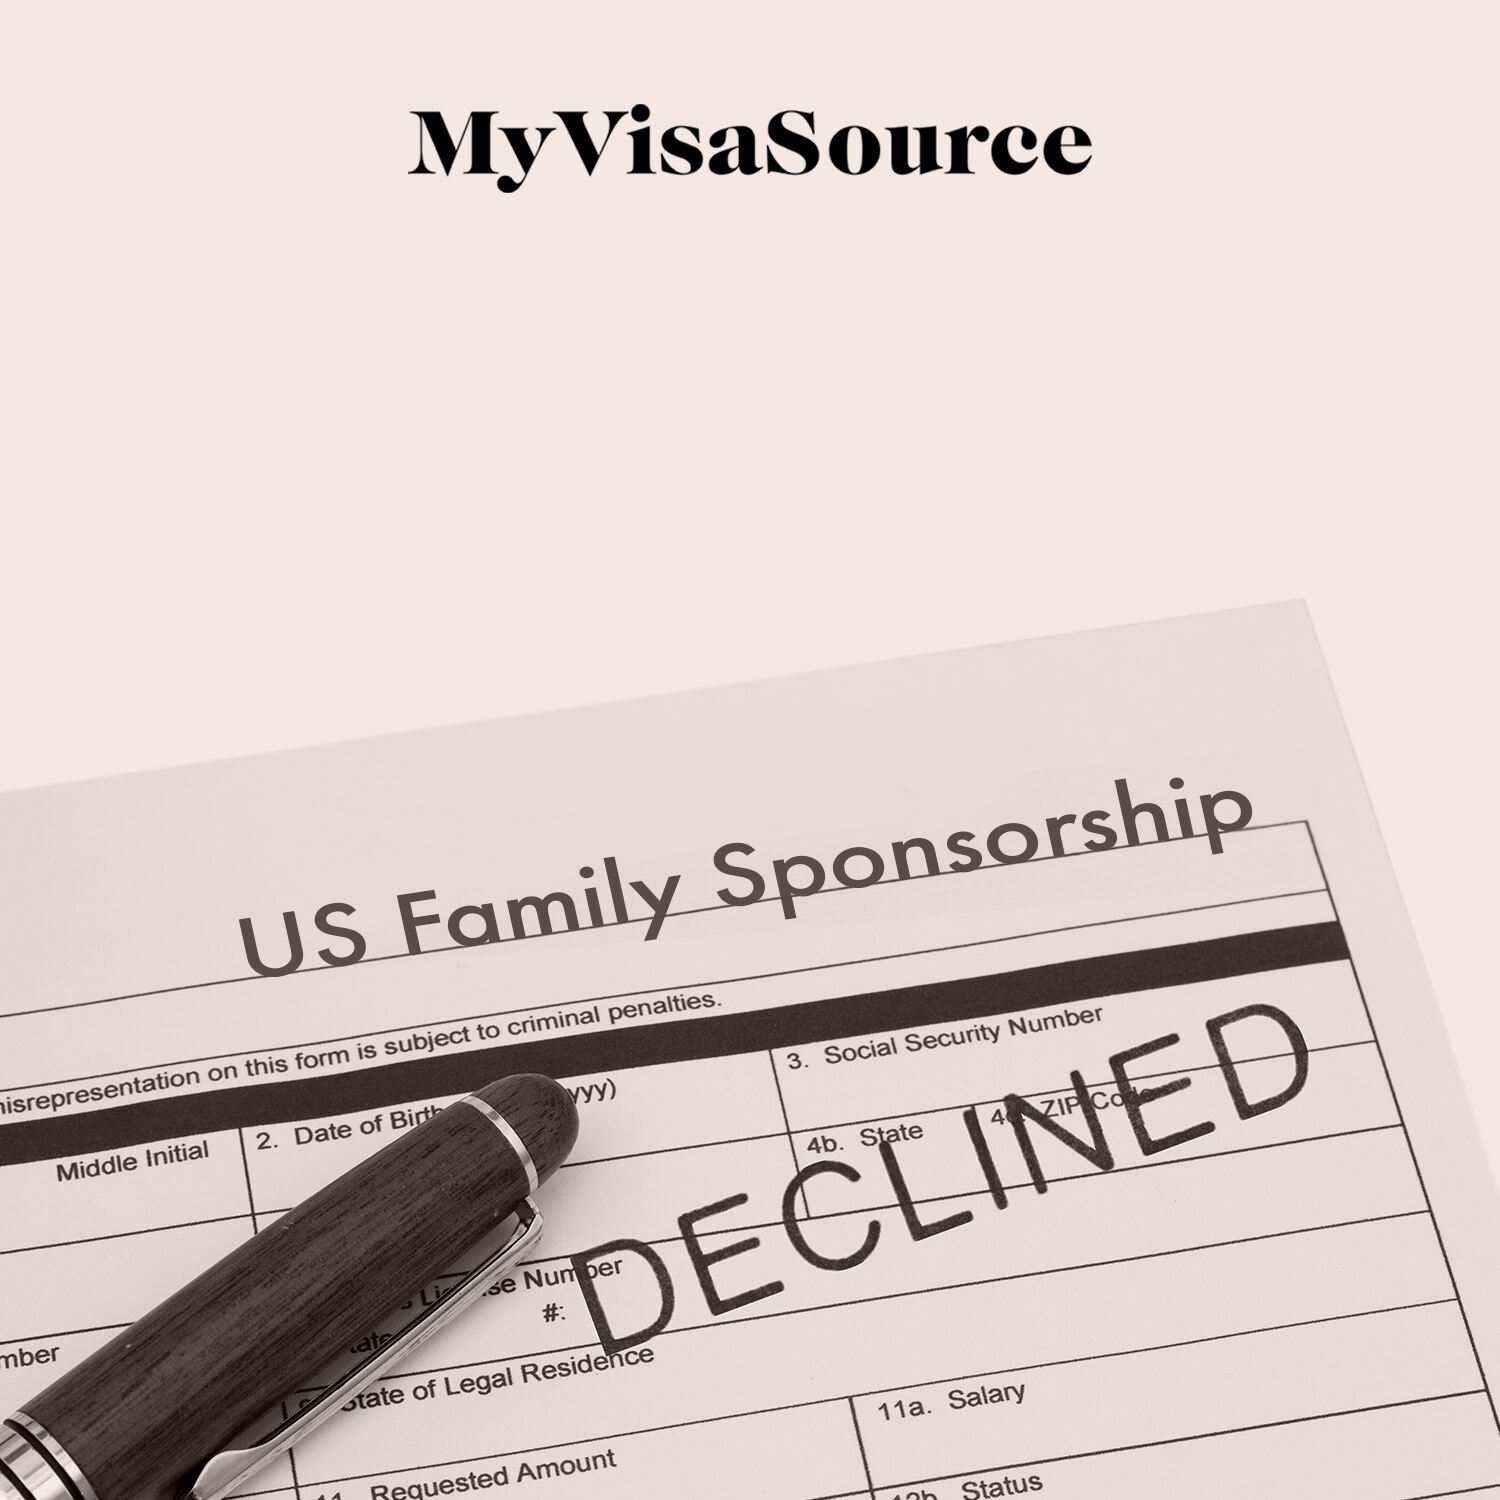 paperwork with us family sponsorship on top with declined on it also my visa source